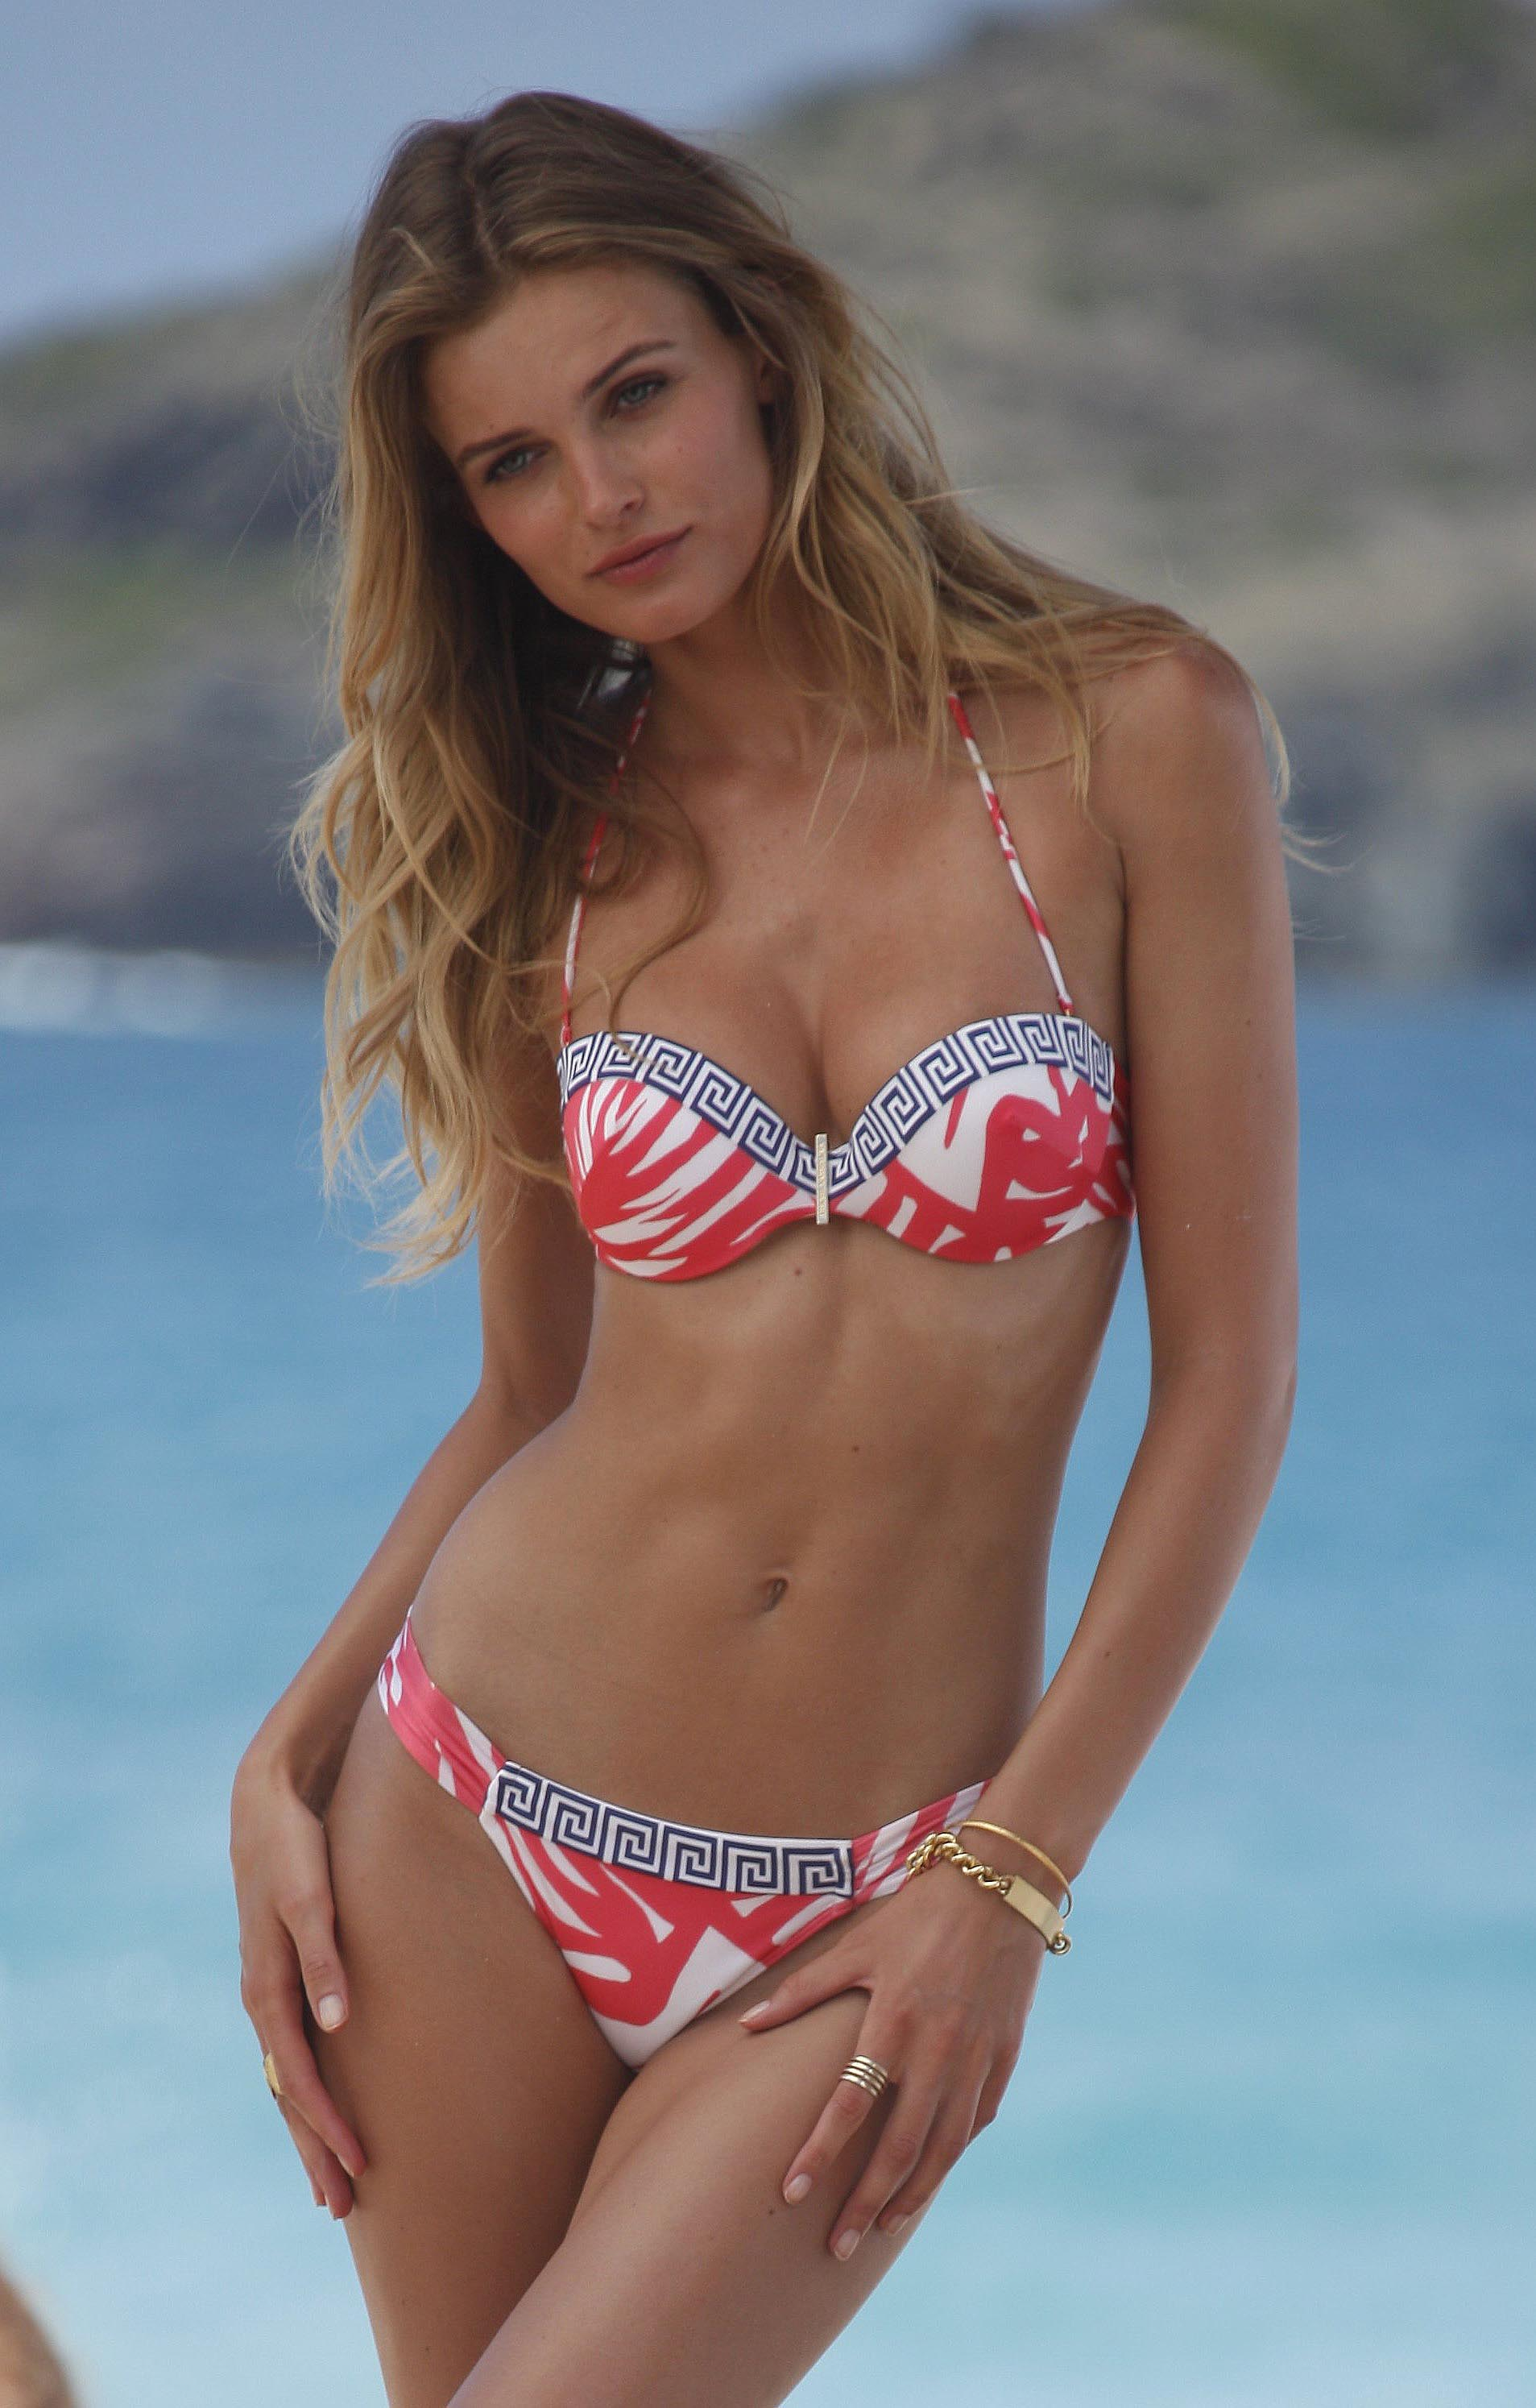 77815_Edita_Vilkeviciute_Bikini_Photoshoot_for_Victorias_Secret_in_St_Barts_January_27_2013_083_122_53lo